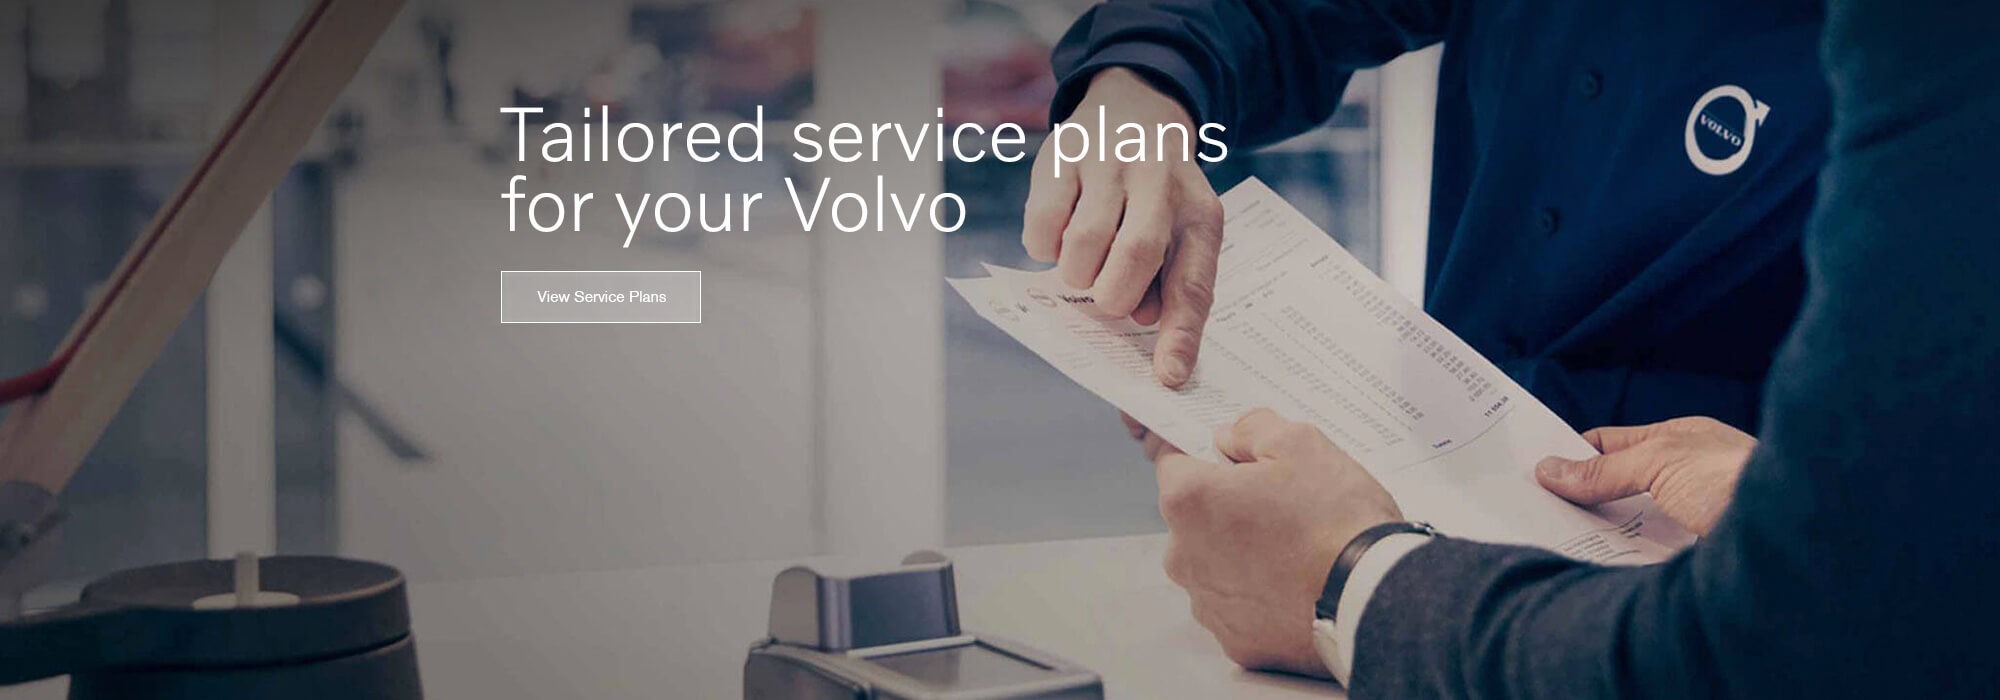 Tailored service plans for your Volvo